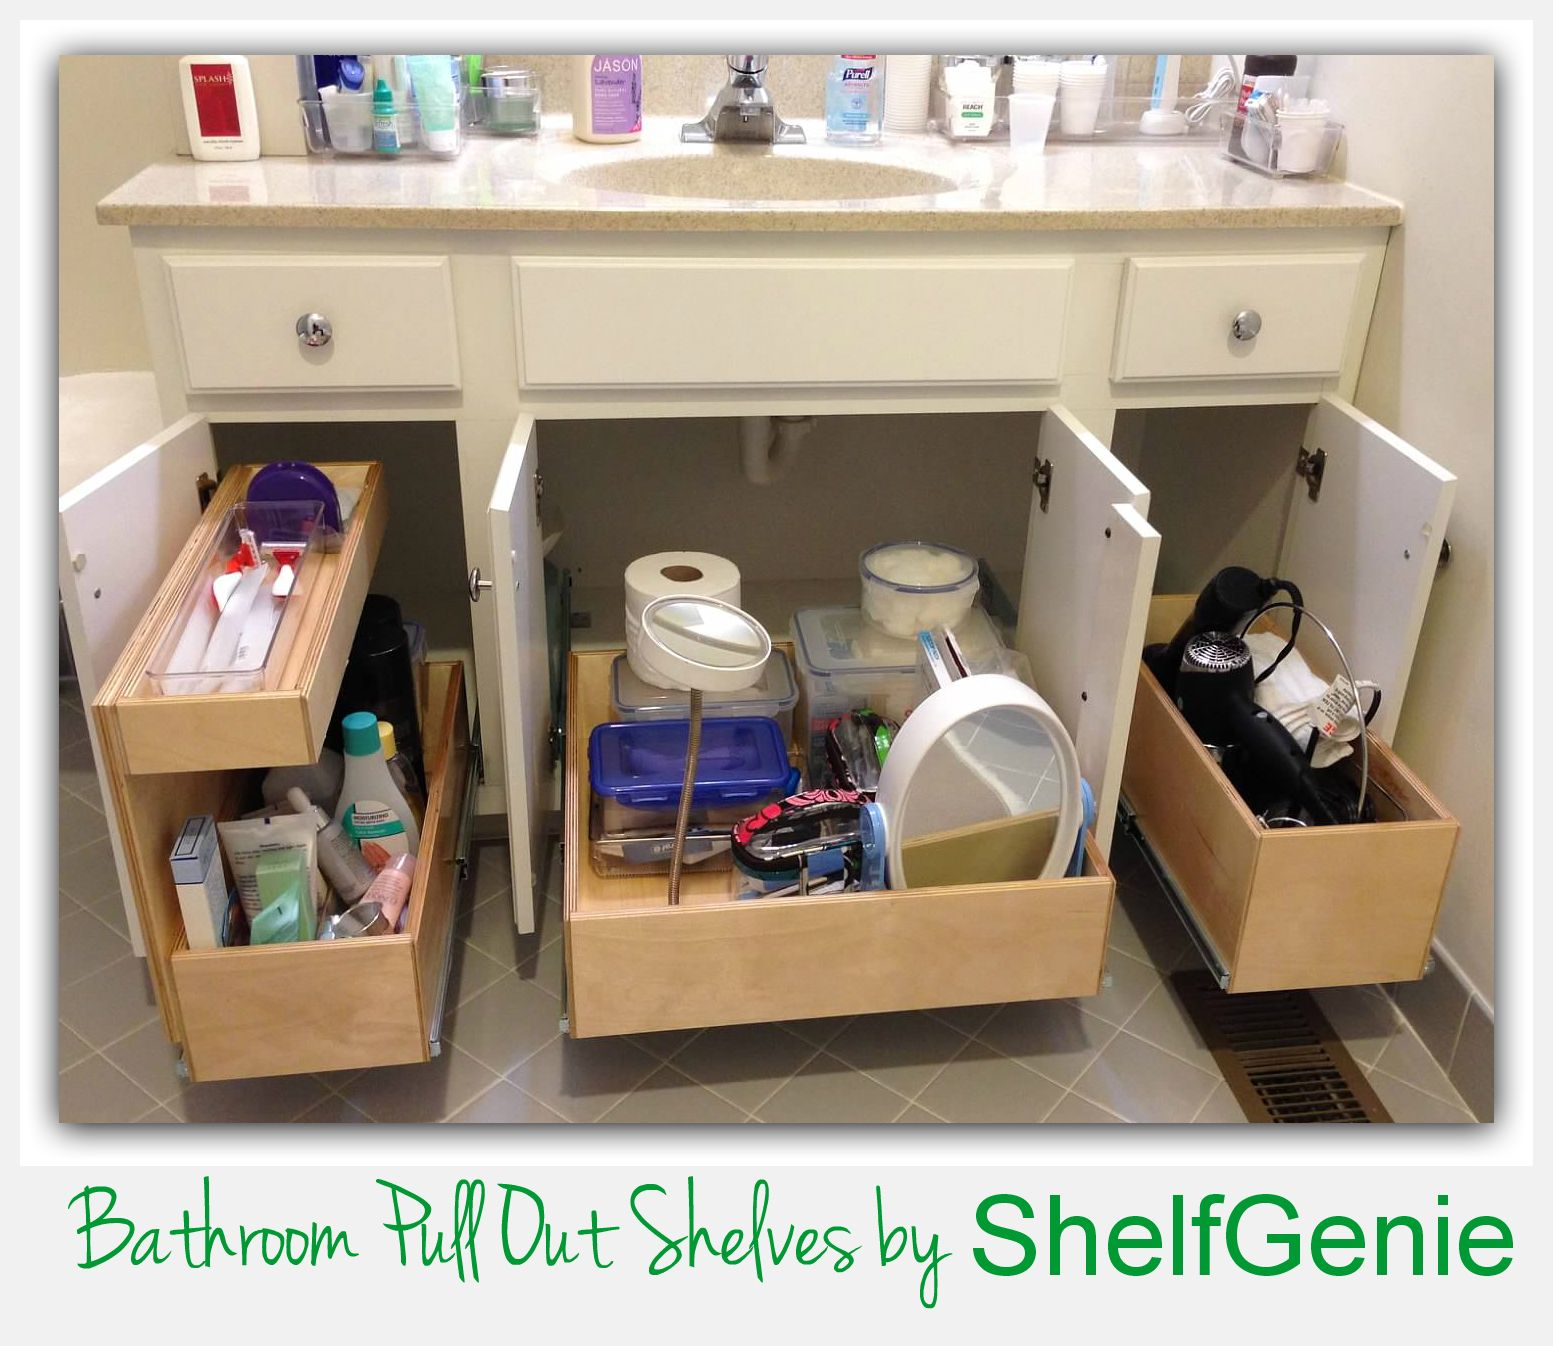 Kitchen Cabinet Storage Solutions Diy Pull Out Shelves: Double-height And Triple-height Pull Out #shelves Create